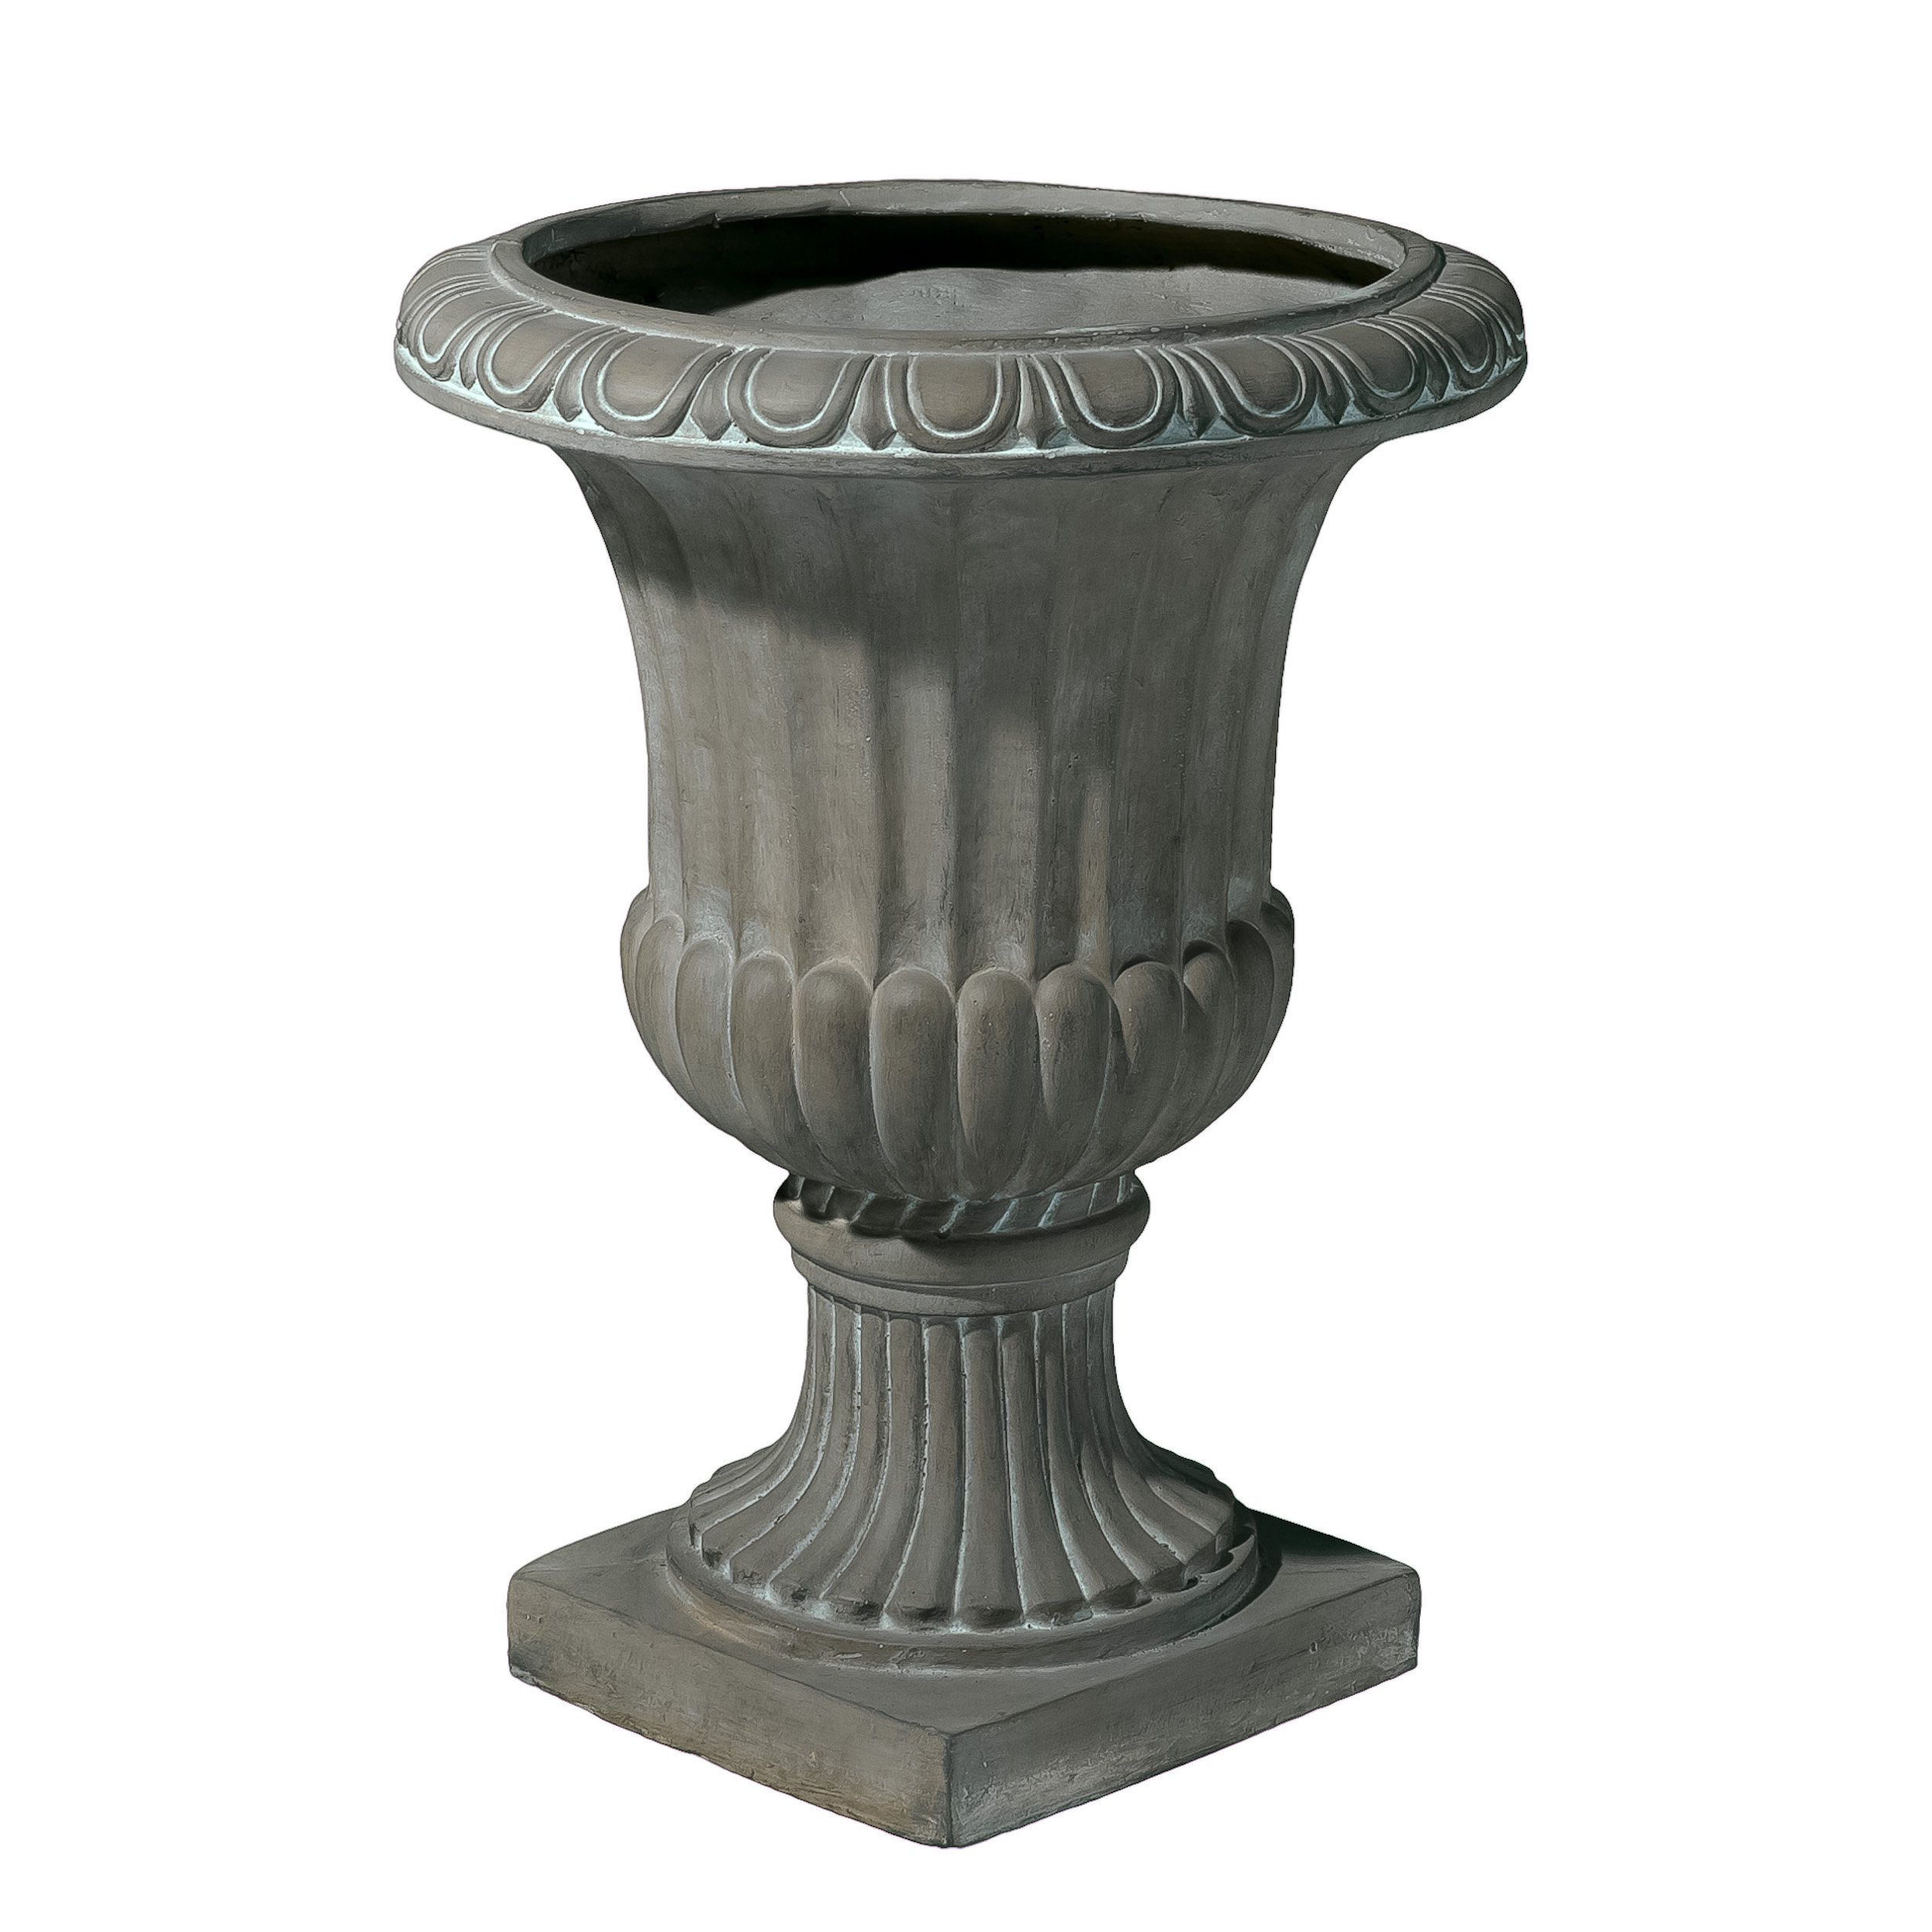 Best-selling Antique Firenze Italian Urn Planter, 26-Inch, Green by Best-selling